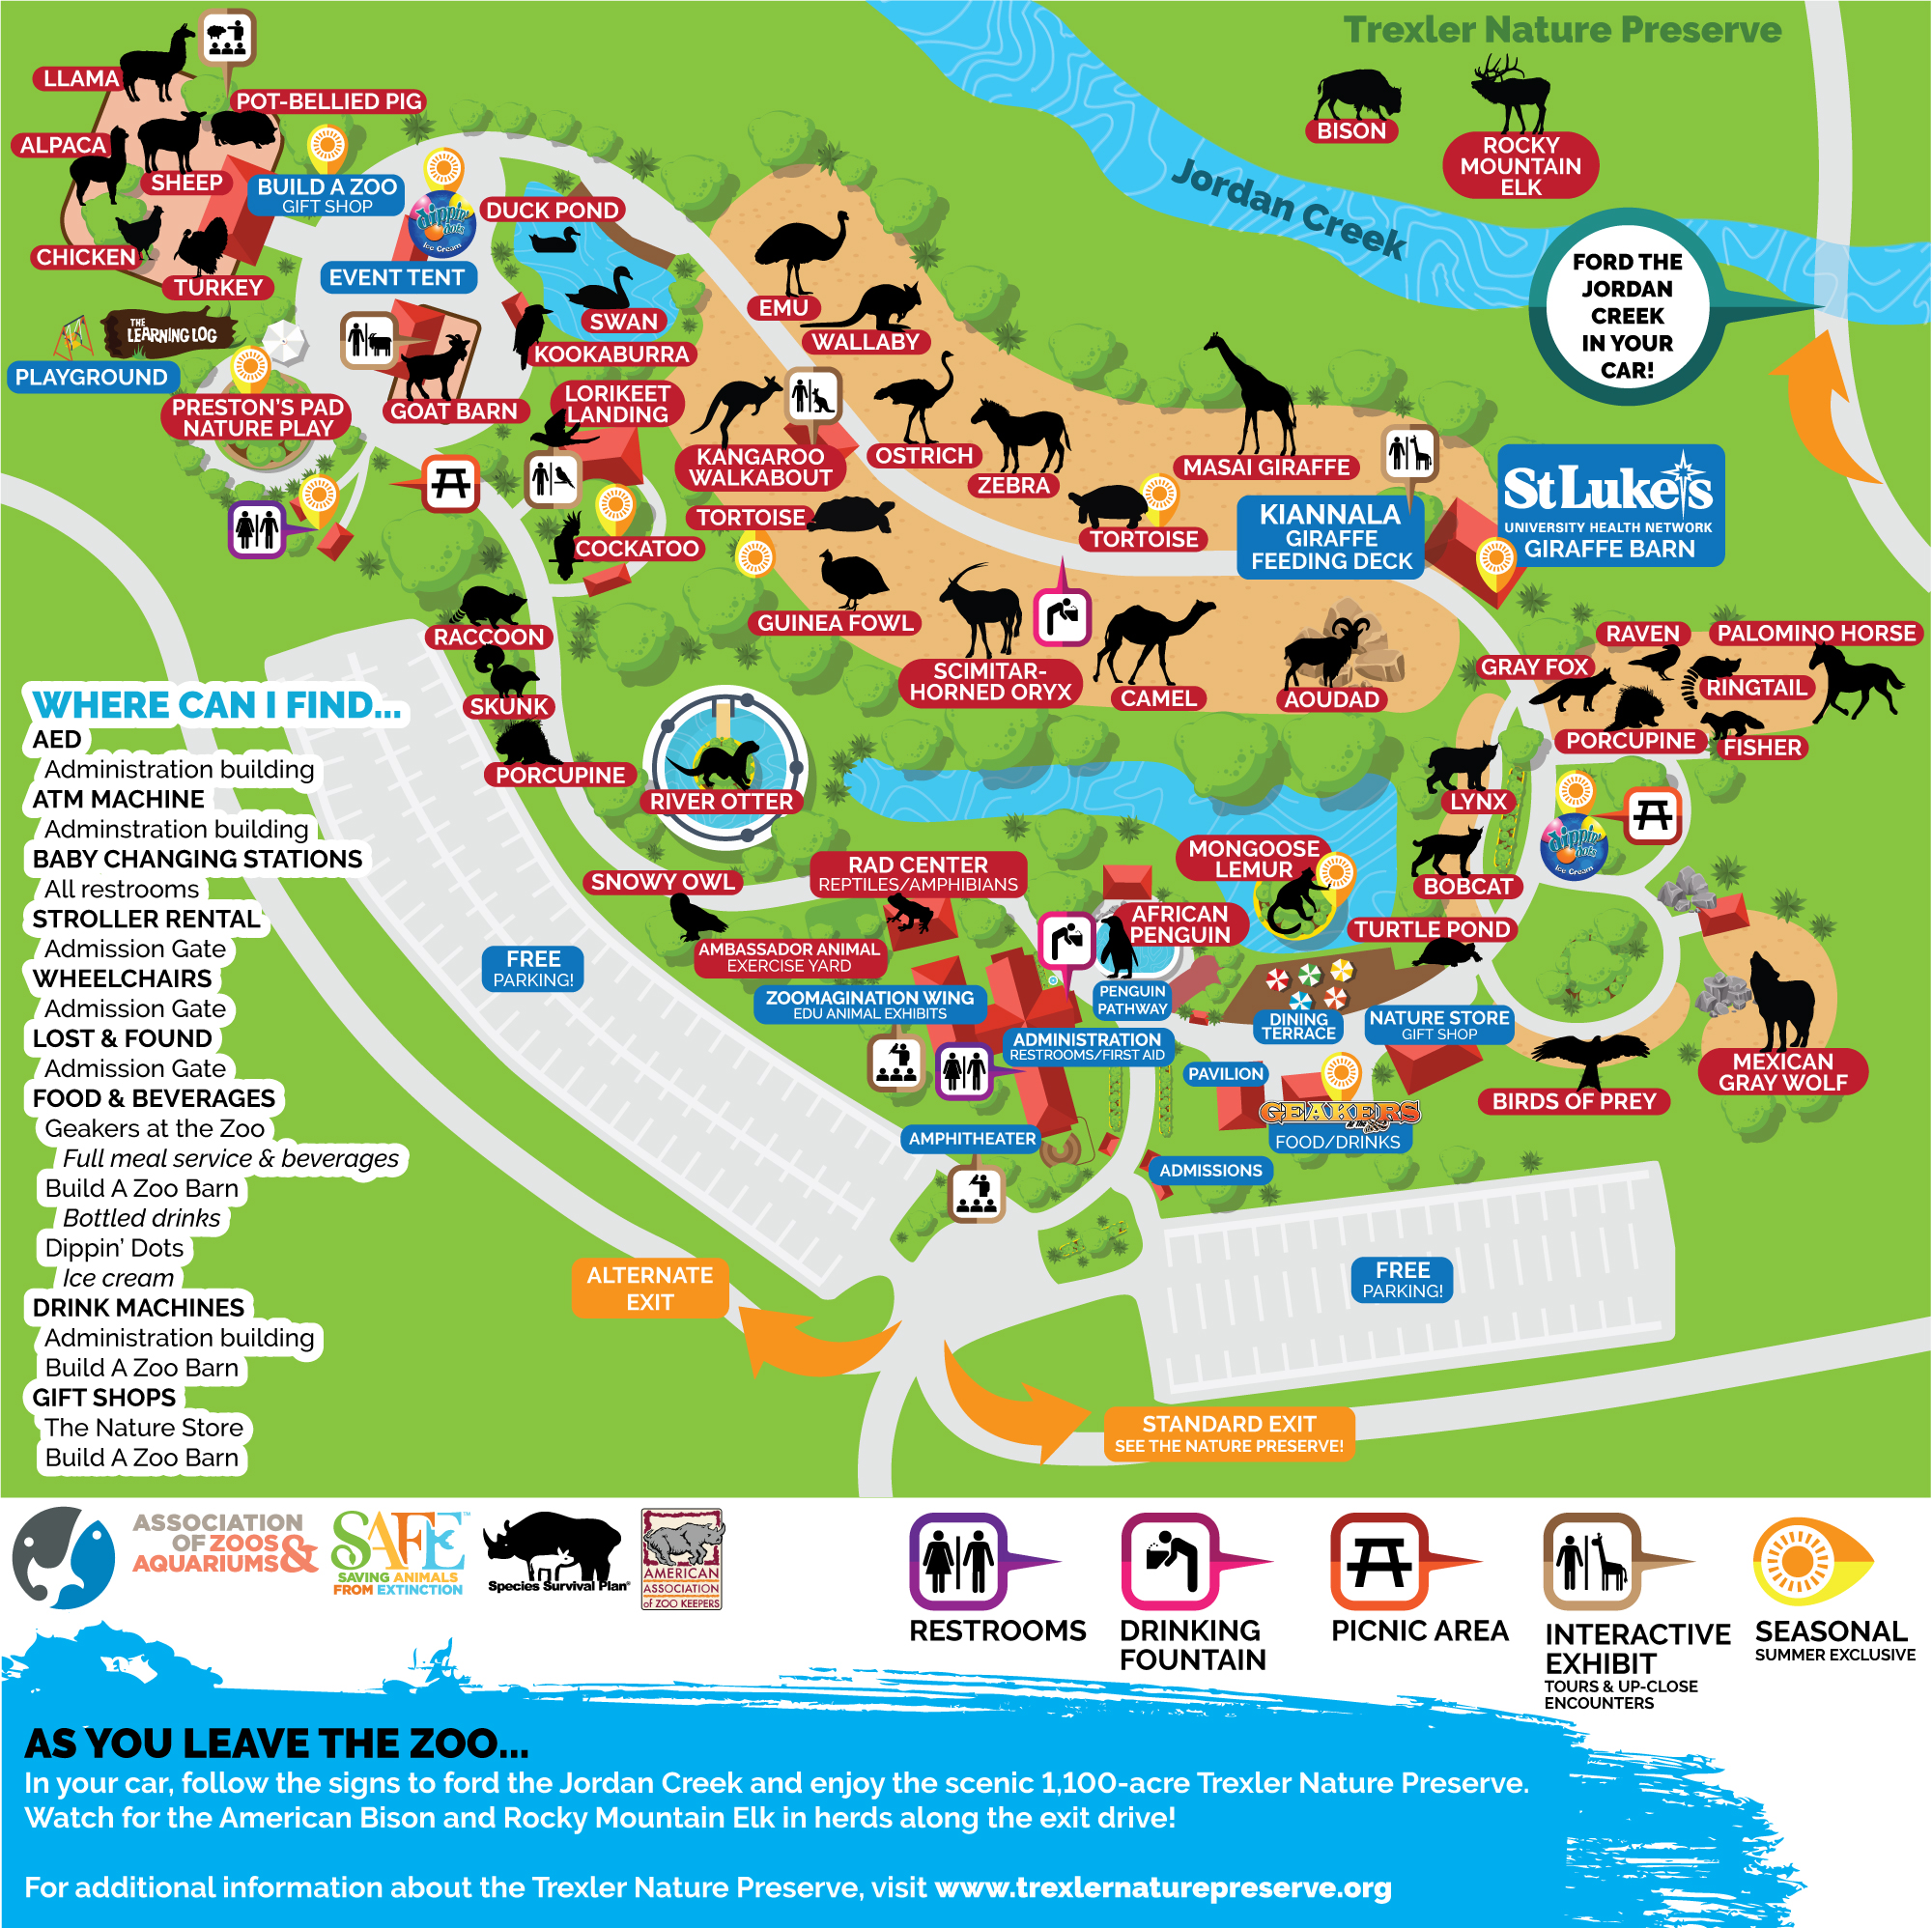 Zoo Map - Lehigh Valley Zoo Zoo Map on playground map, aquarium map, z nation map, zog map, community map, parks map, museum map, beach map, ocean map, illegal wildlife trade map, animal map, neighborhood map, bedroom map, world map, sense8 map, big cat map, singapore map, farm map, stadium map, the 100 map,